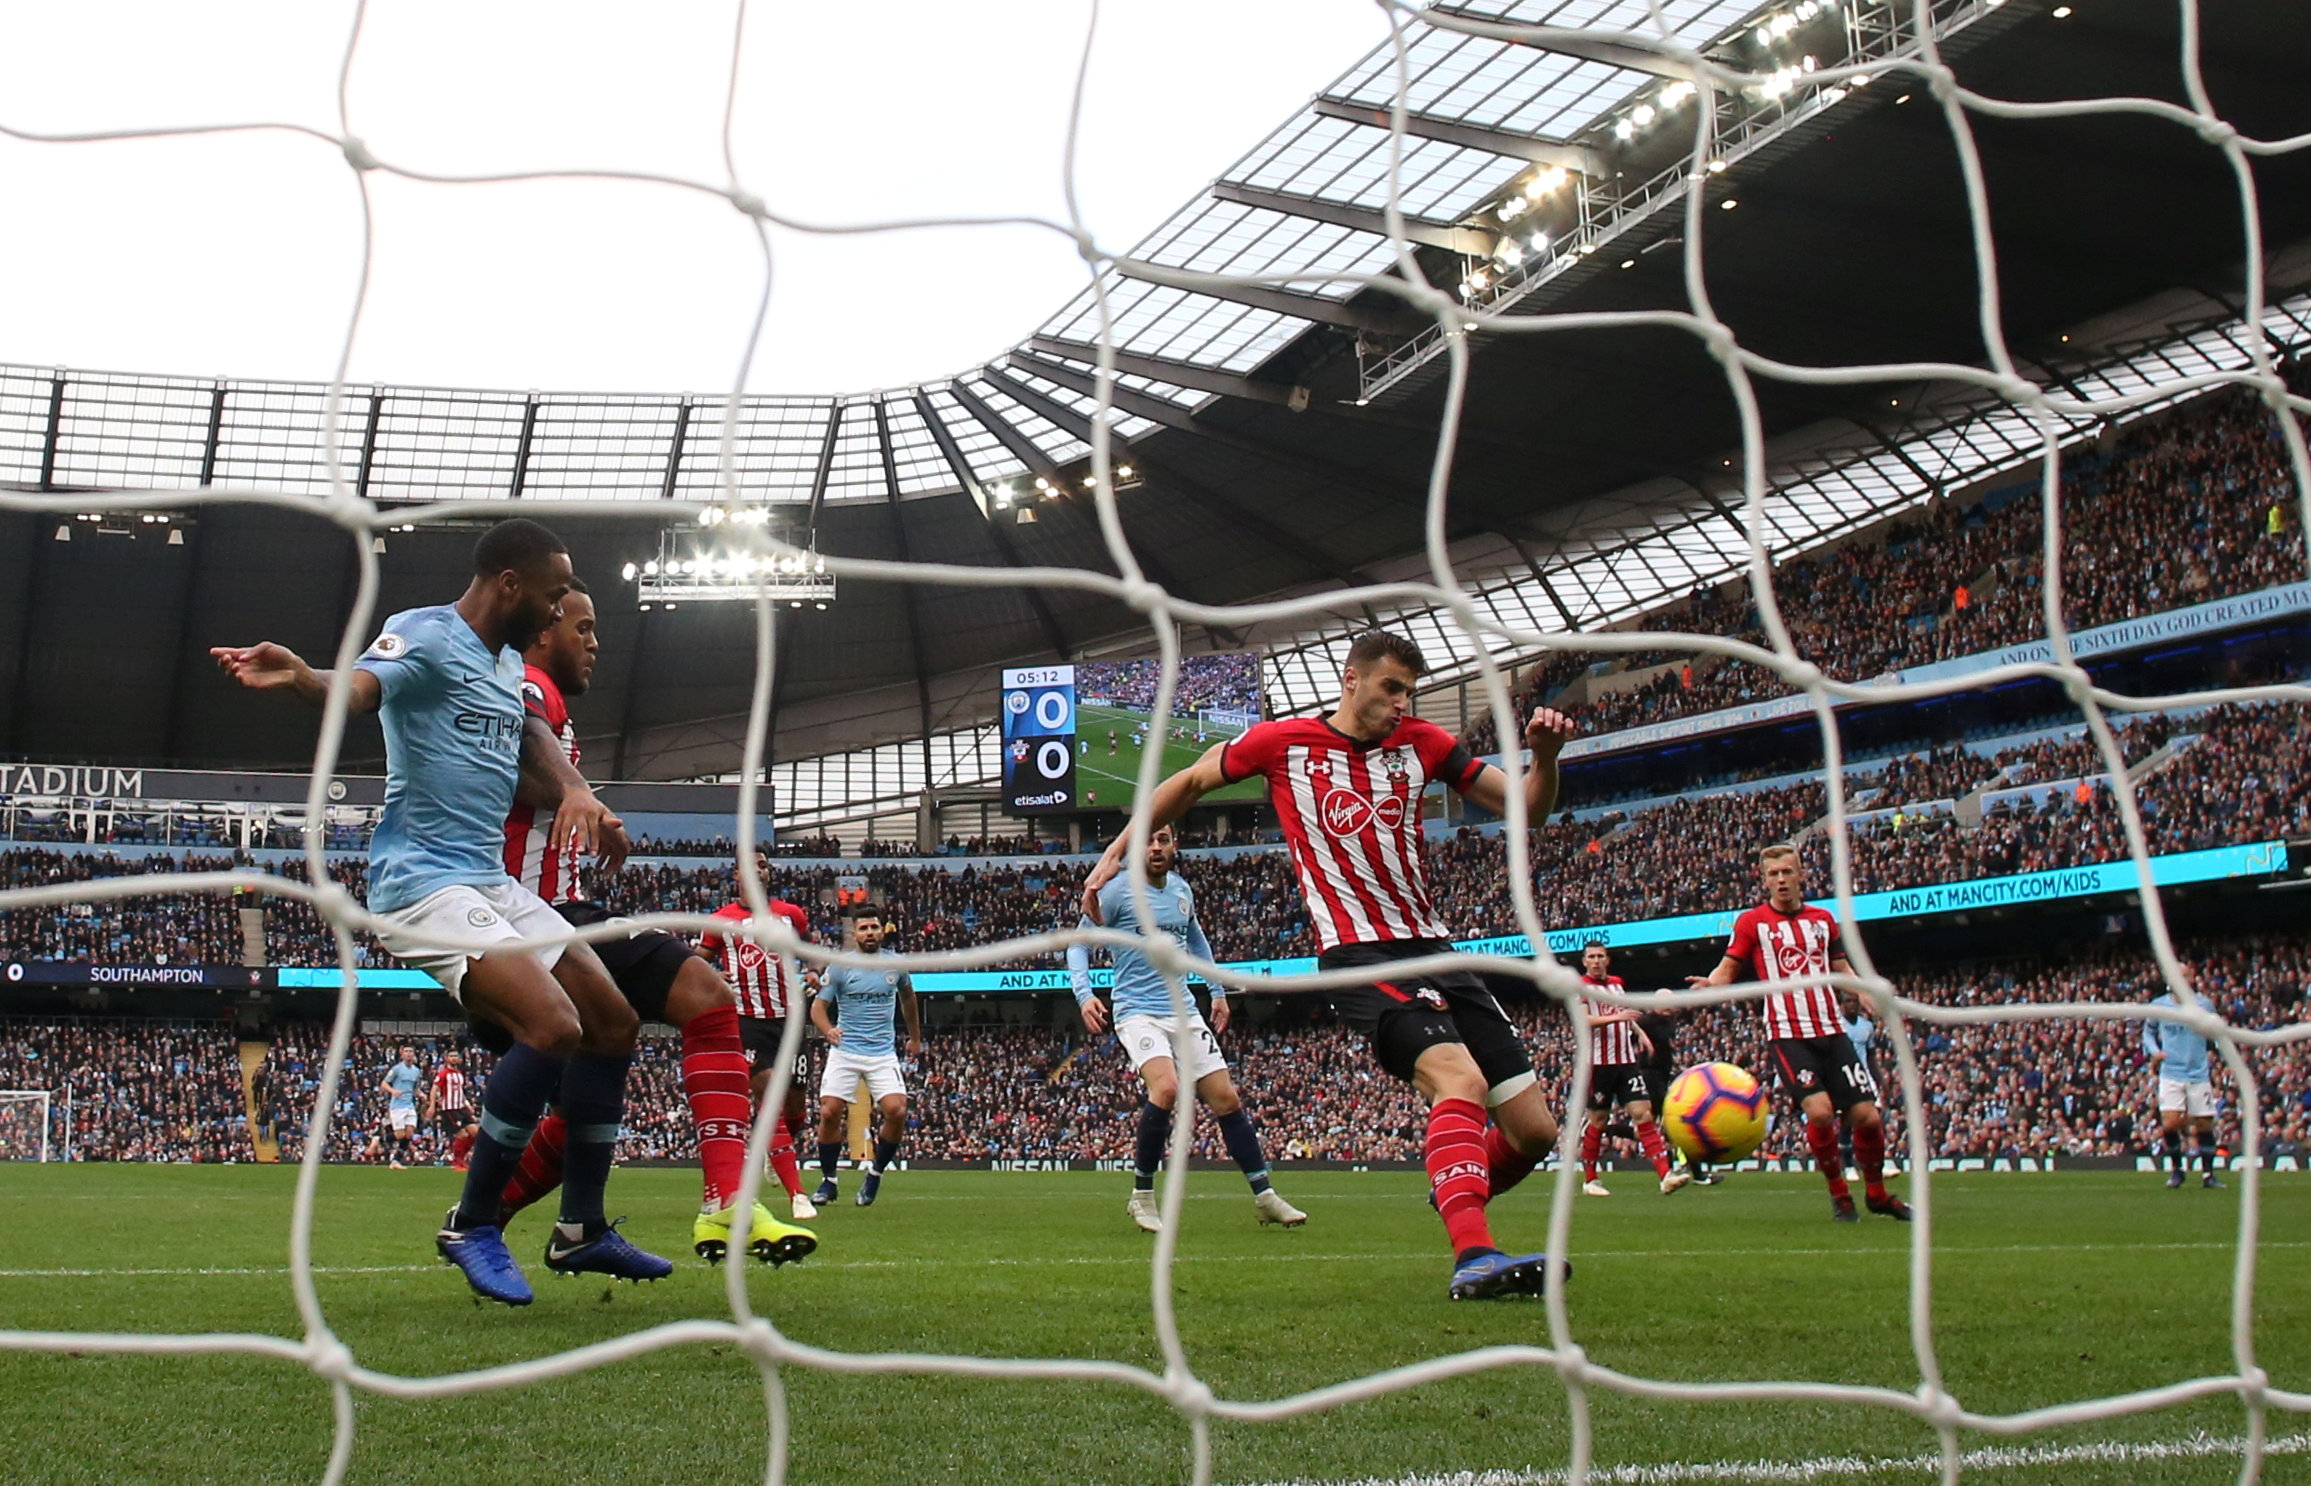 Wesley Hoedt scored an own goal in Southampton's mauling at Manchester City last weekend. Picture: Action Images